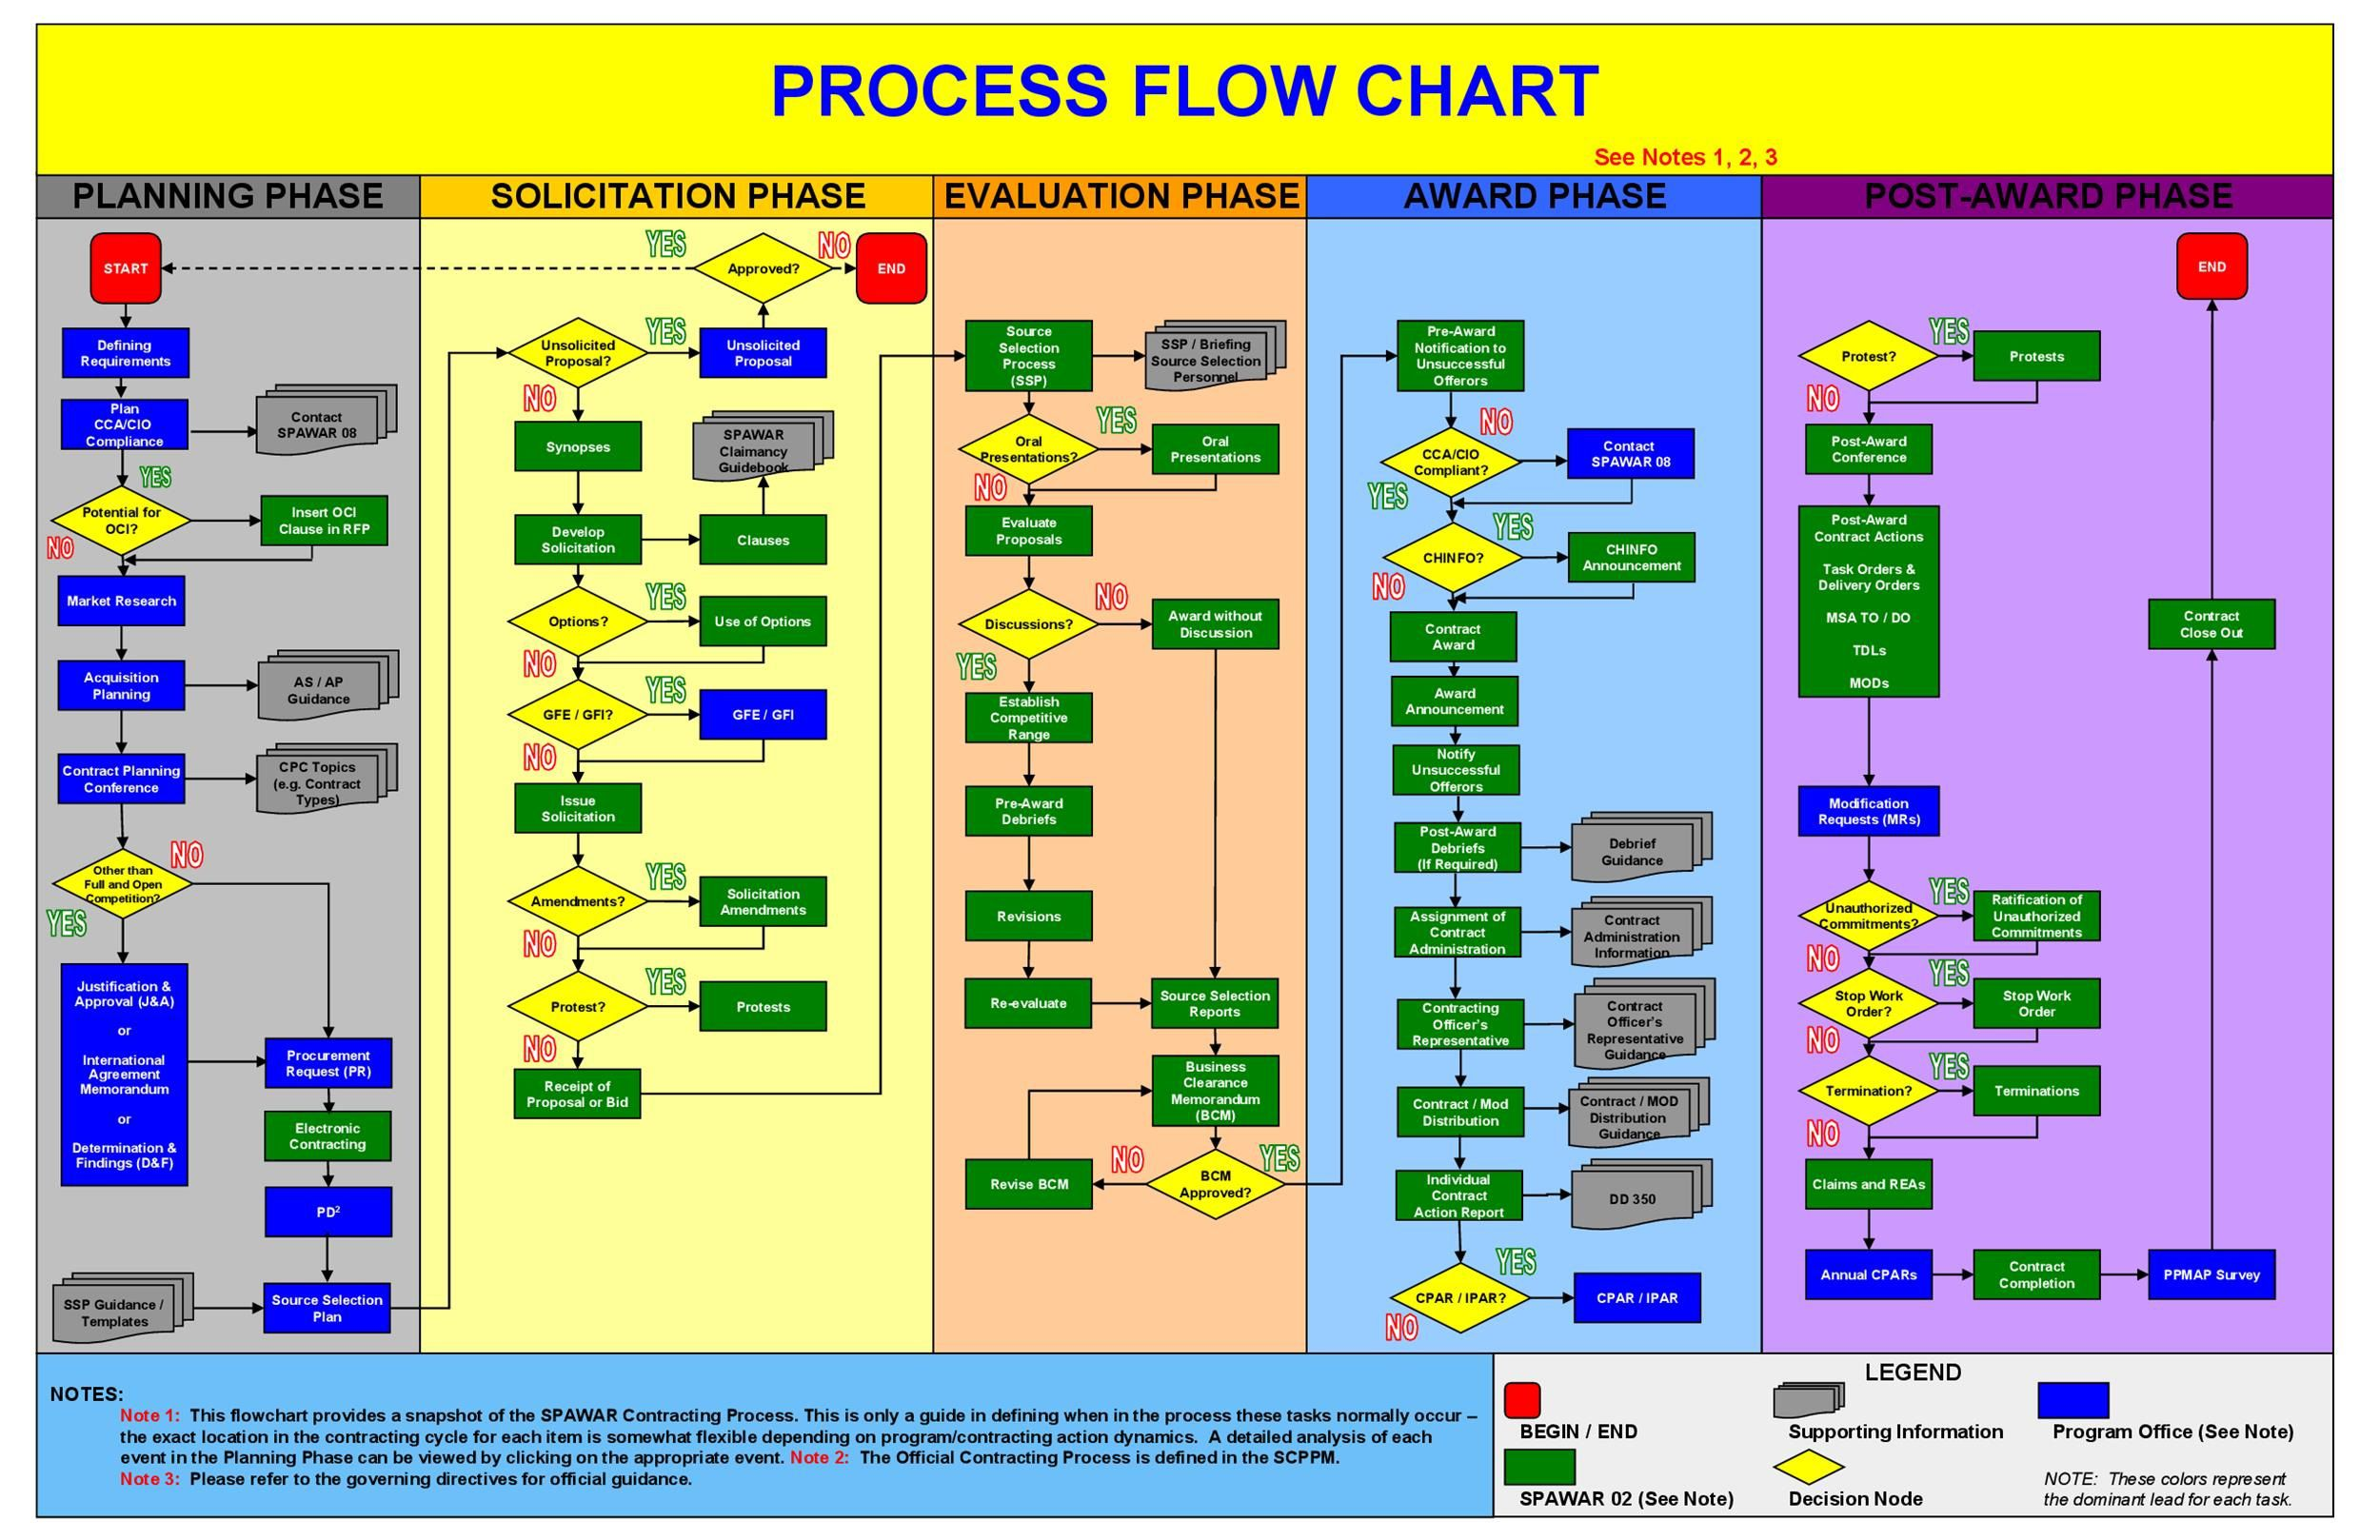 004 Breathtaking Flow Chart Template Excel Free Photo  Blank For DownloadFull